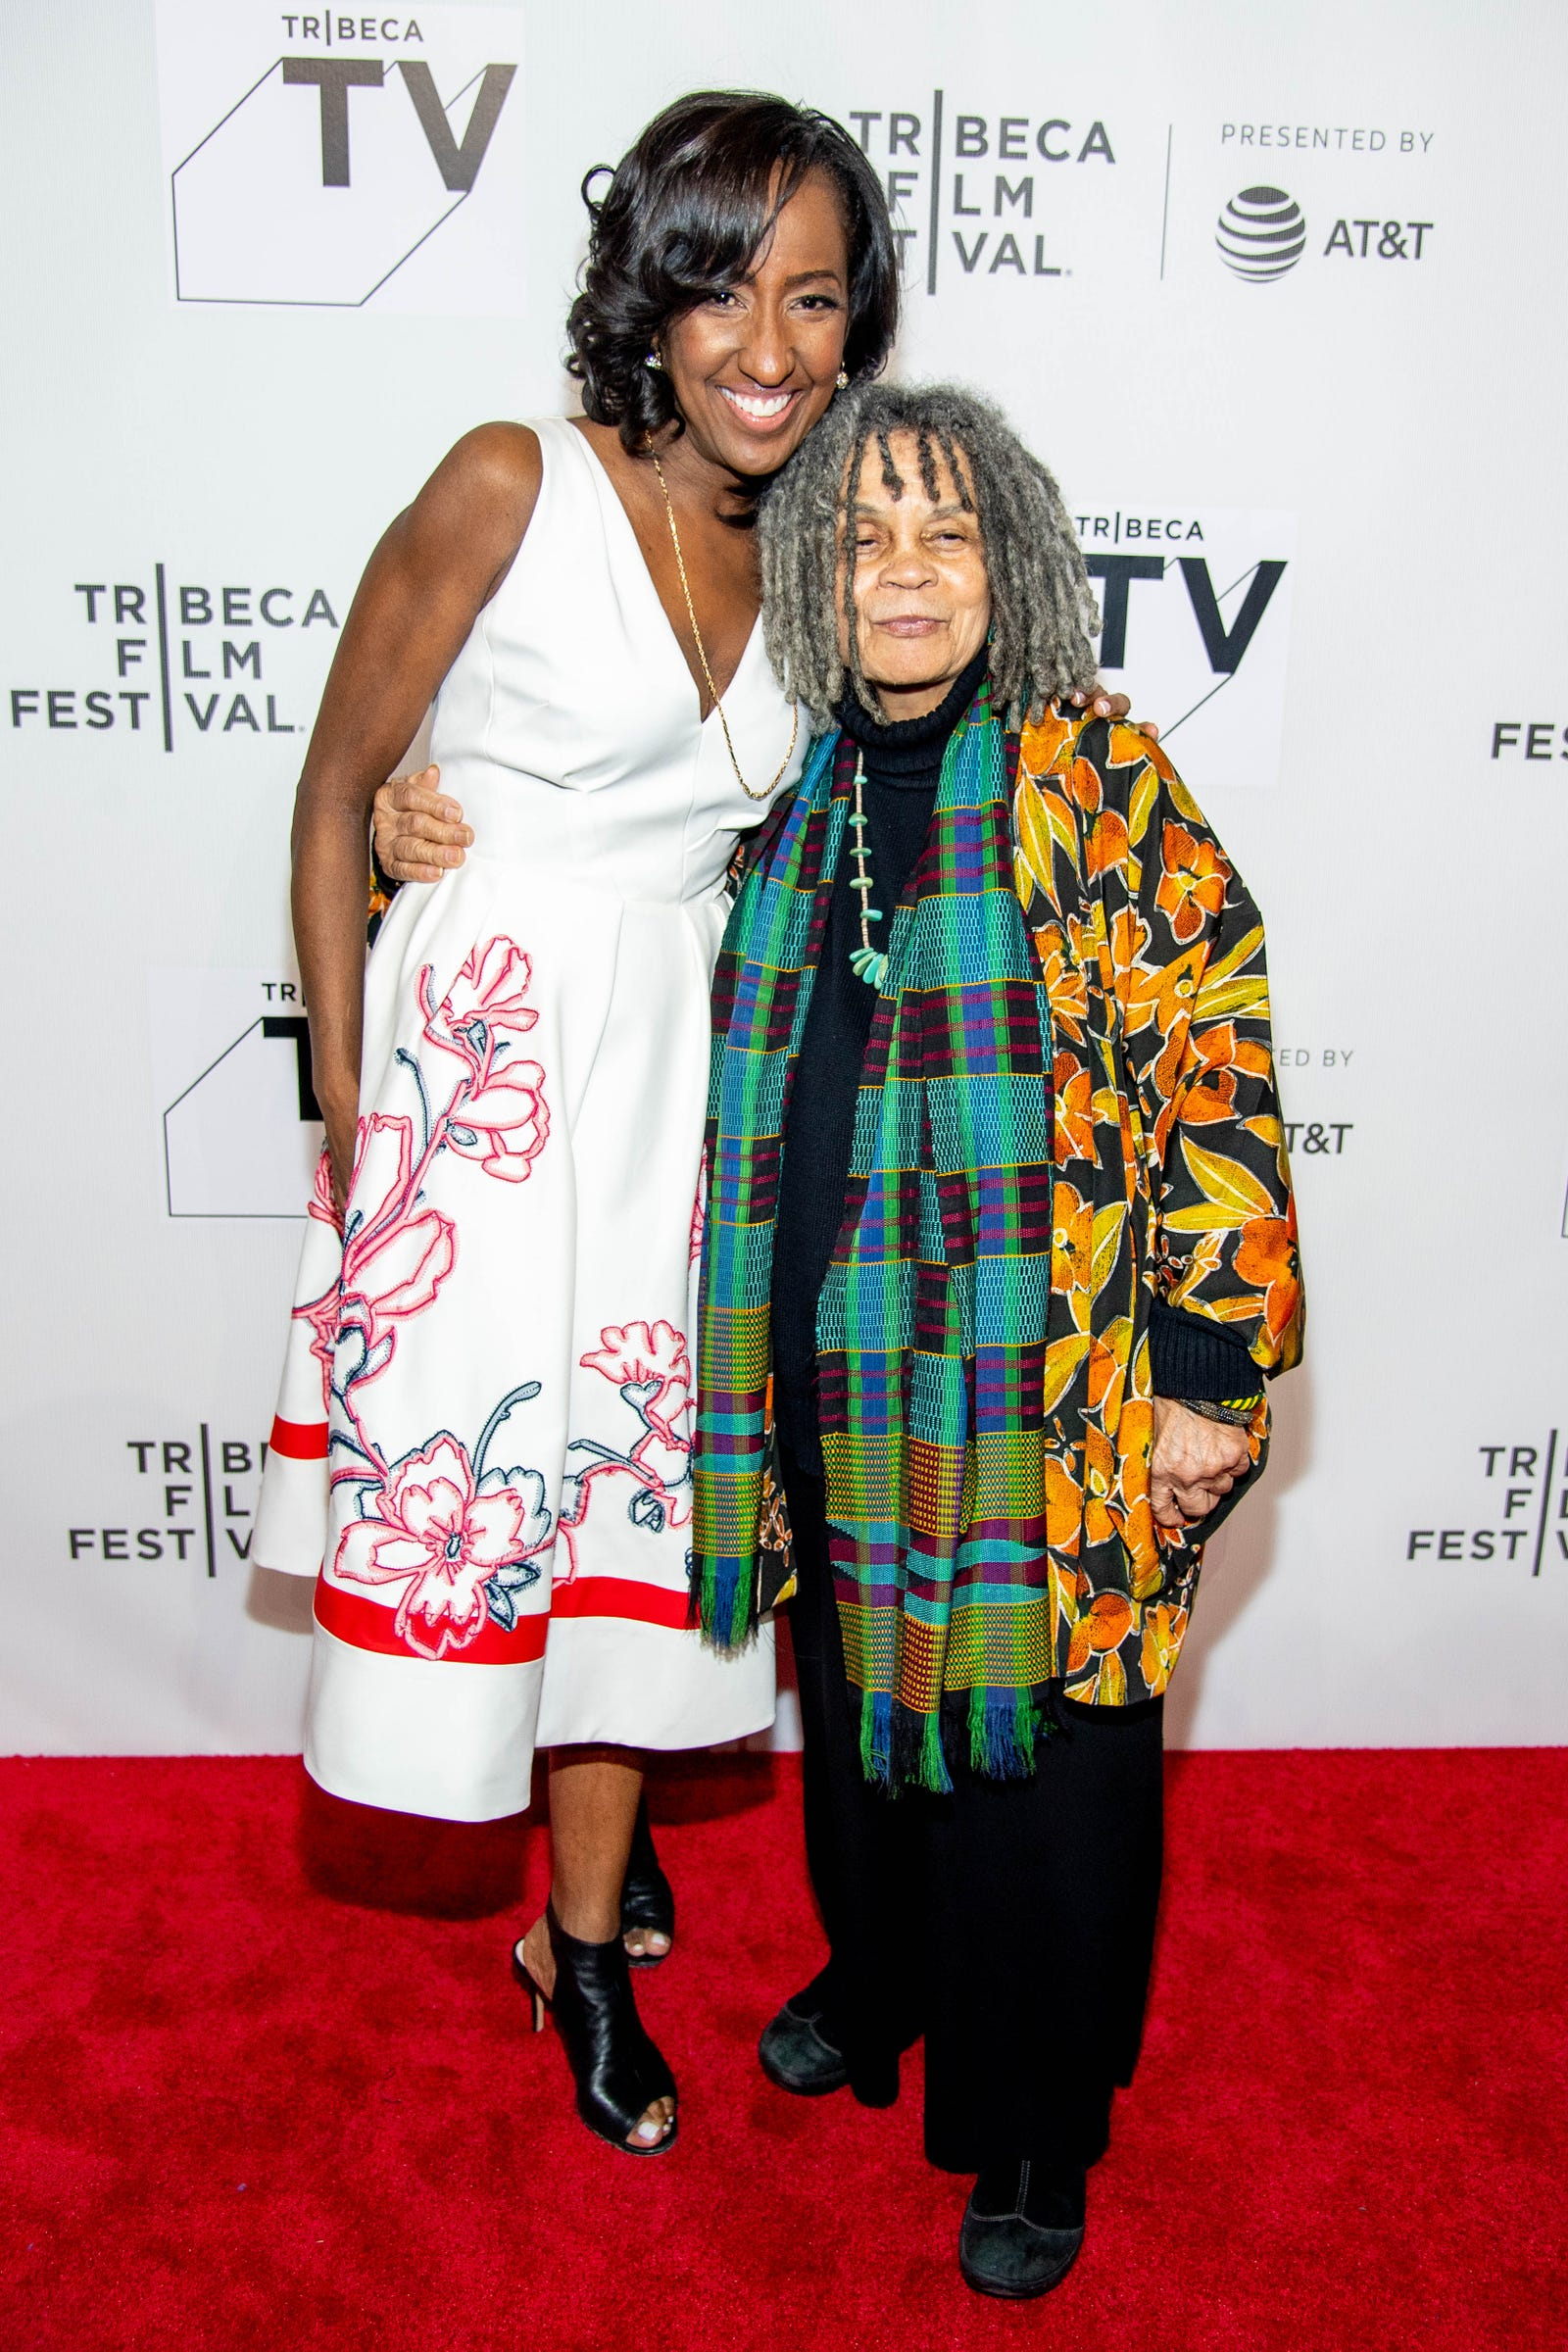 Melissa Haizlip and Sonia Sanchez attend the 'Mr. Soul!' screening during Tribeca Film Festival at Spring Studios on April 22, 2018, in New York City.